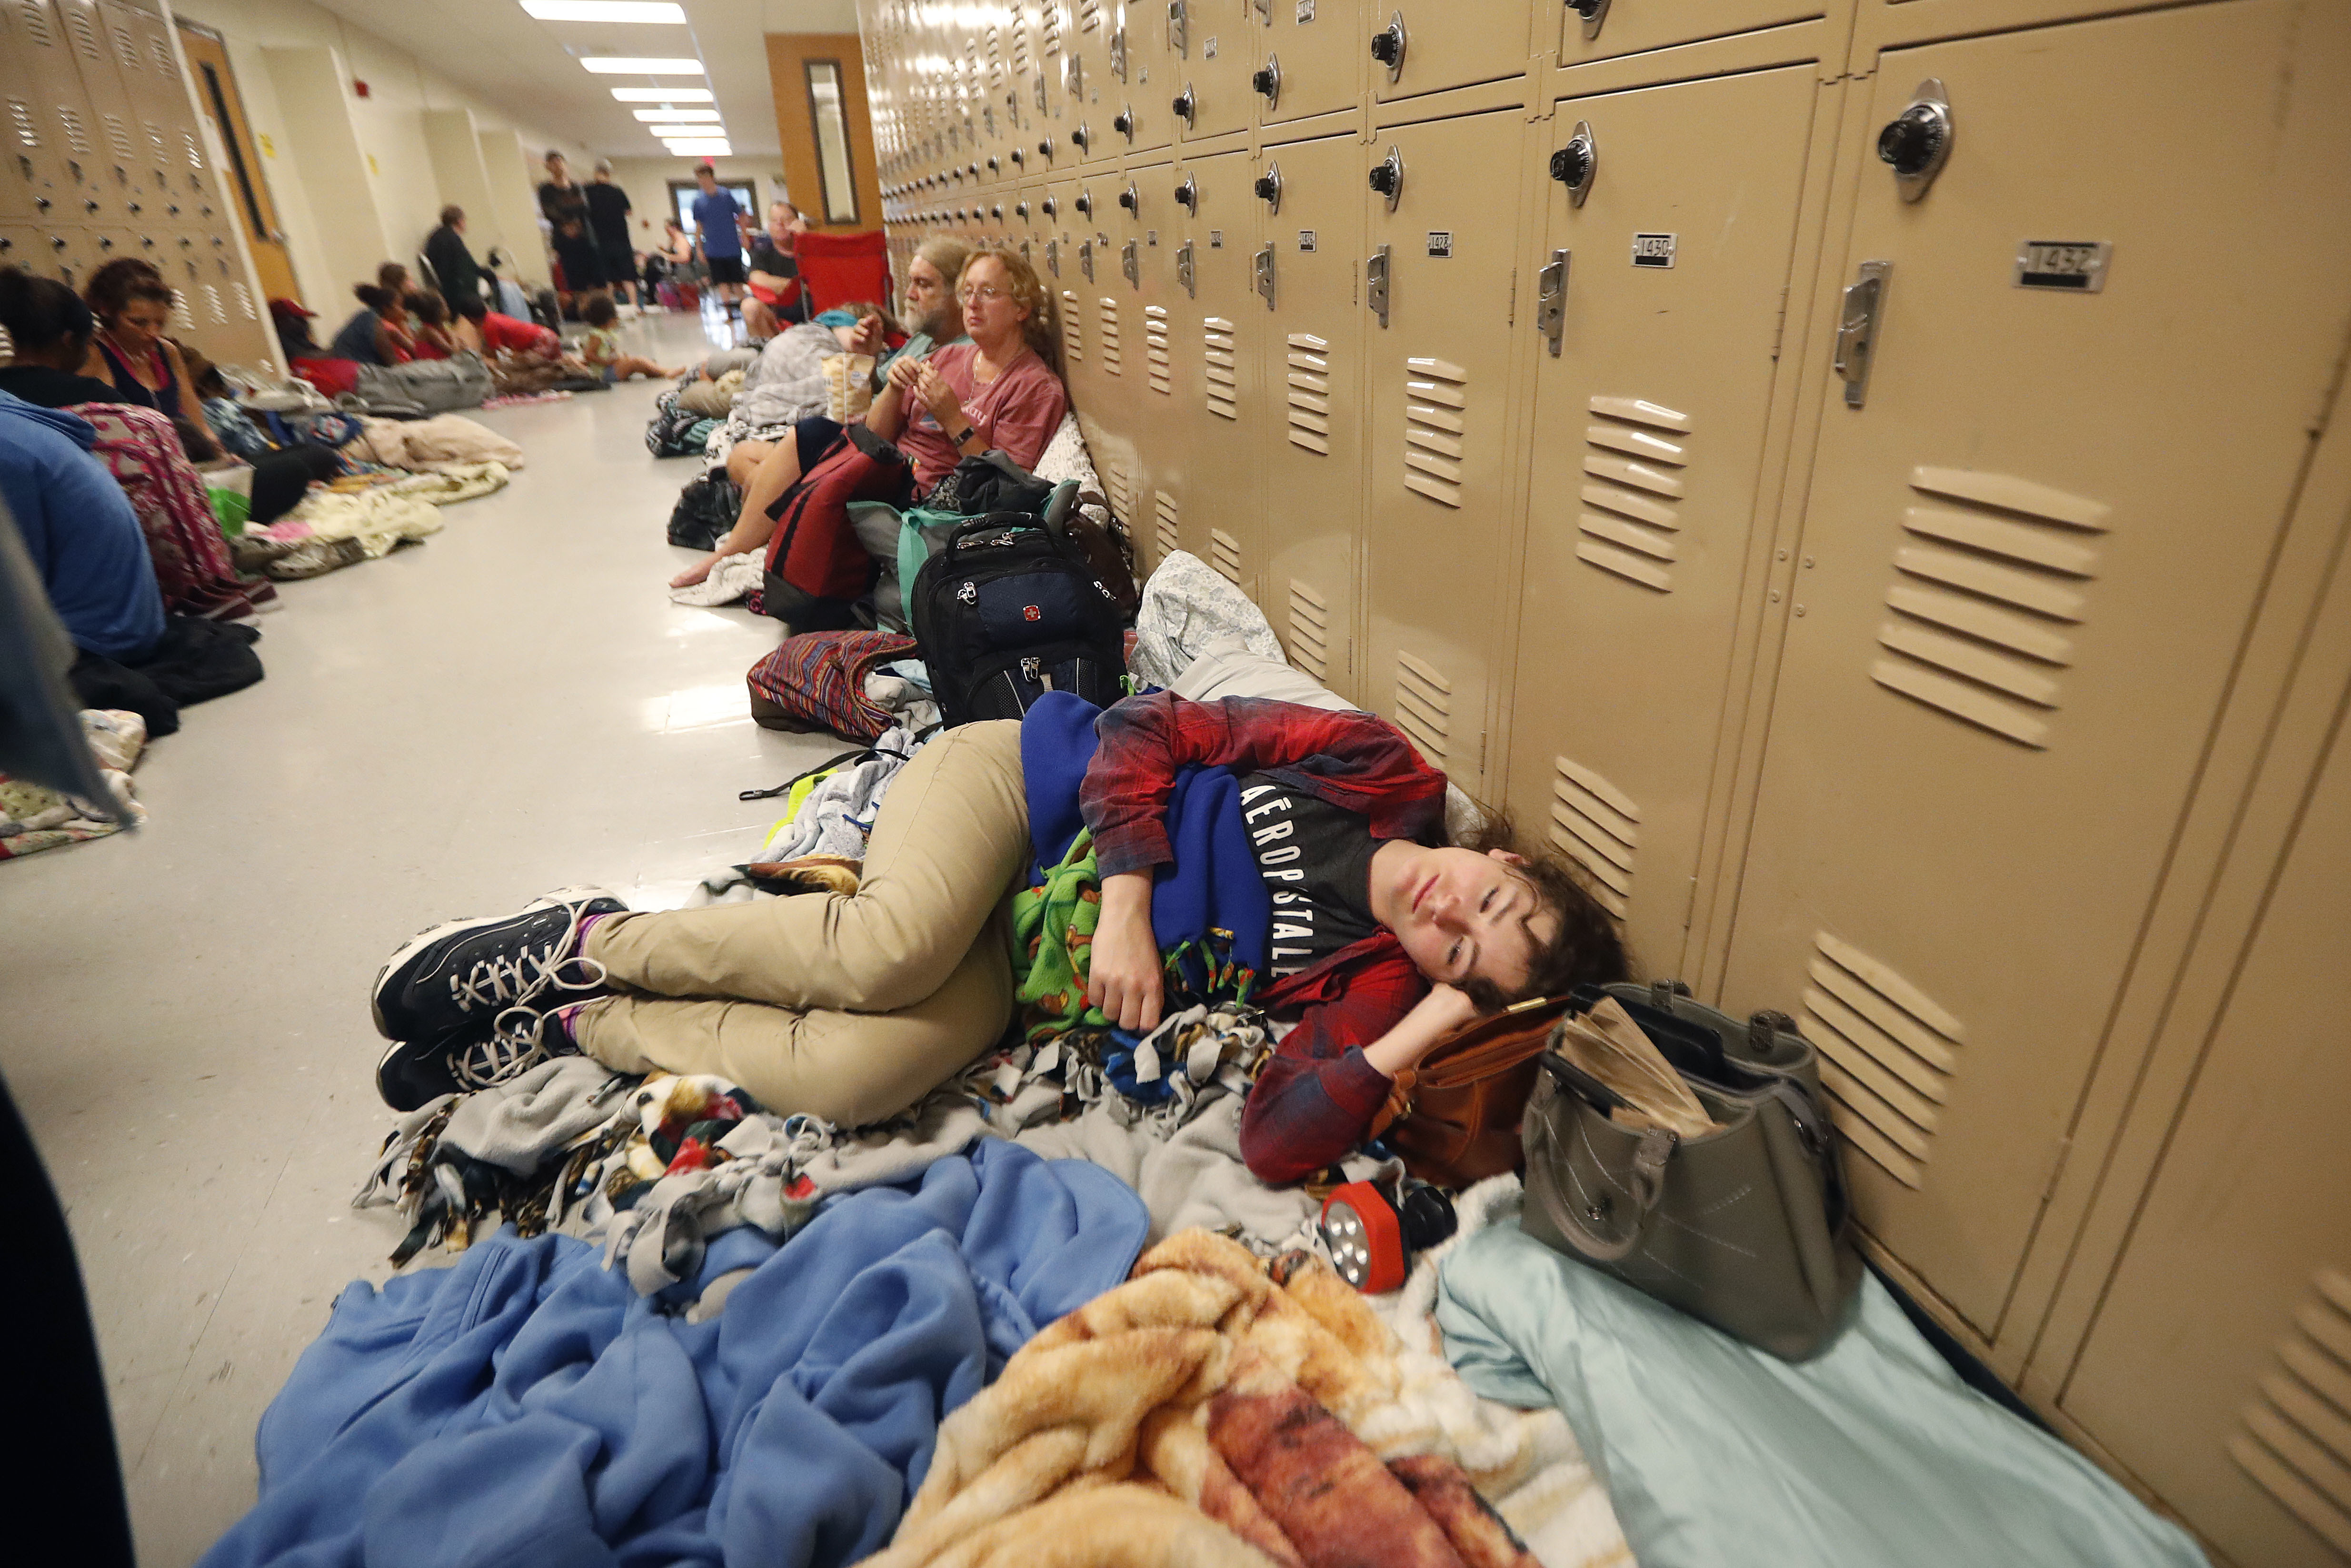 CORRECTS NAME OF HURRICANE TO MICHAEL FROM MATTHEW - Emily Hindle lies on the floor at an evacuation shelter set up at Rutherford High School, in advance of Hurricane Michael, which is expected to make landfall today, in Panama City Beach, Fla., Wednesday, Oct. 10, 2018. (AP Photo/Gerald Herbert)